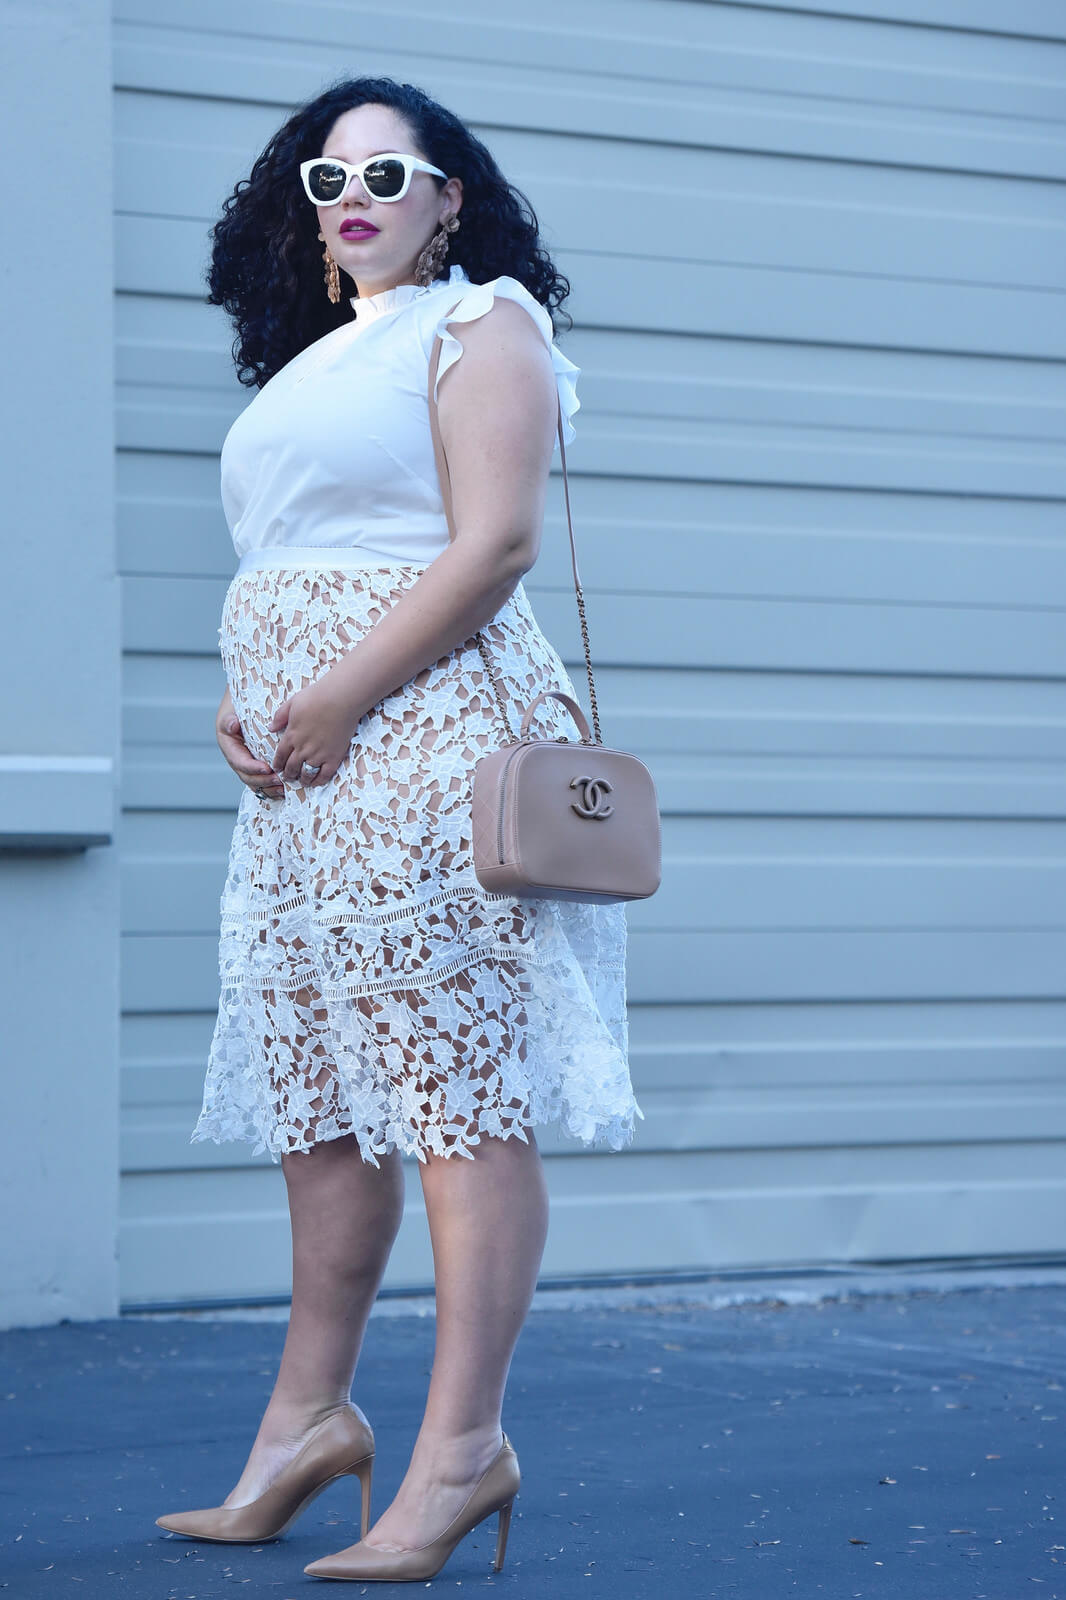 The Classy Girl's Guide to Wearing the Nude Trend via @GirlWithCurves